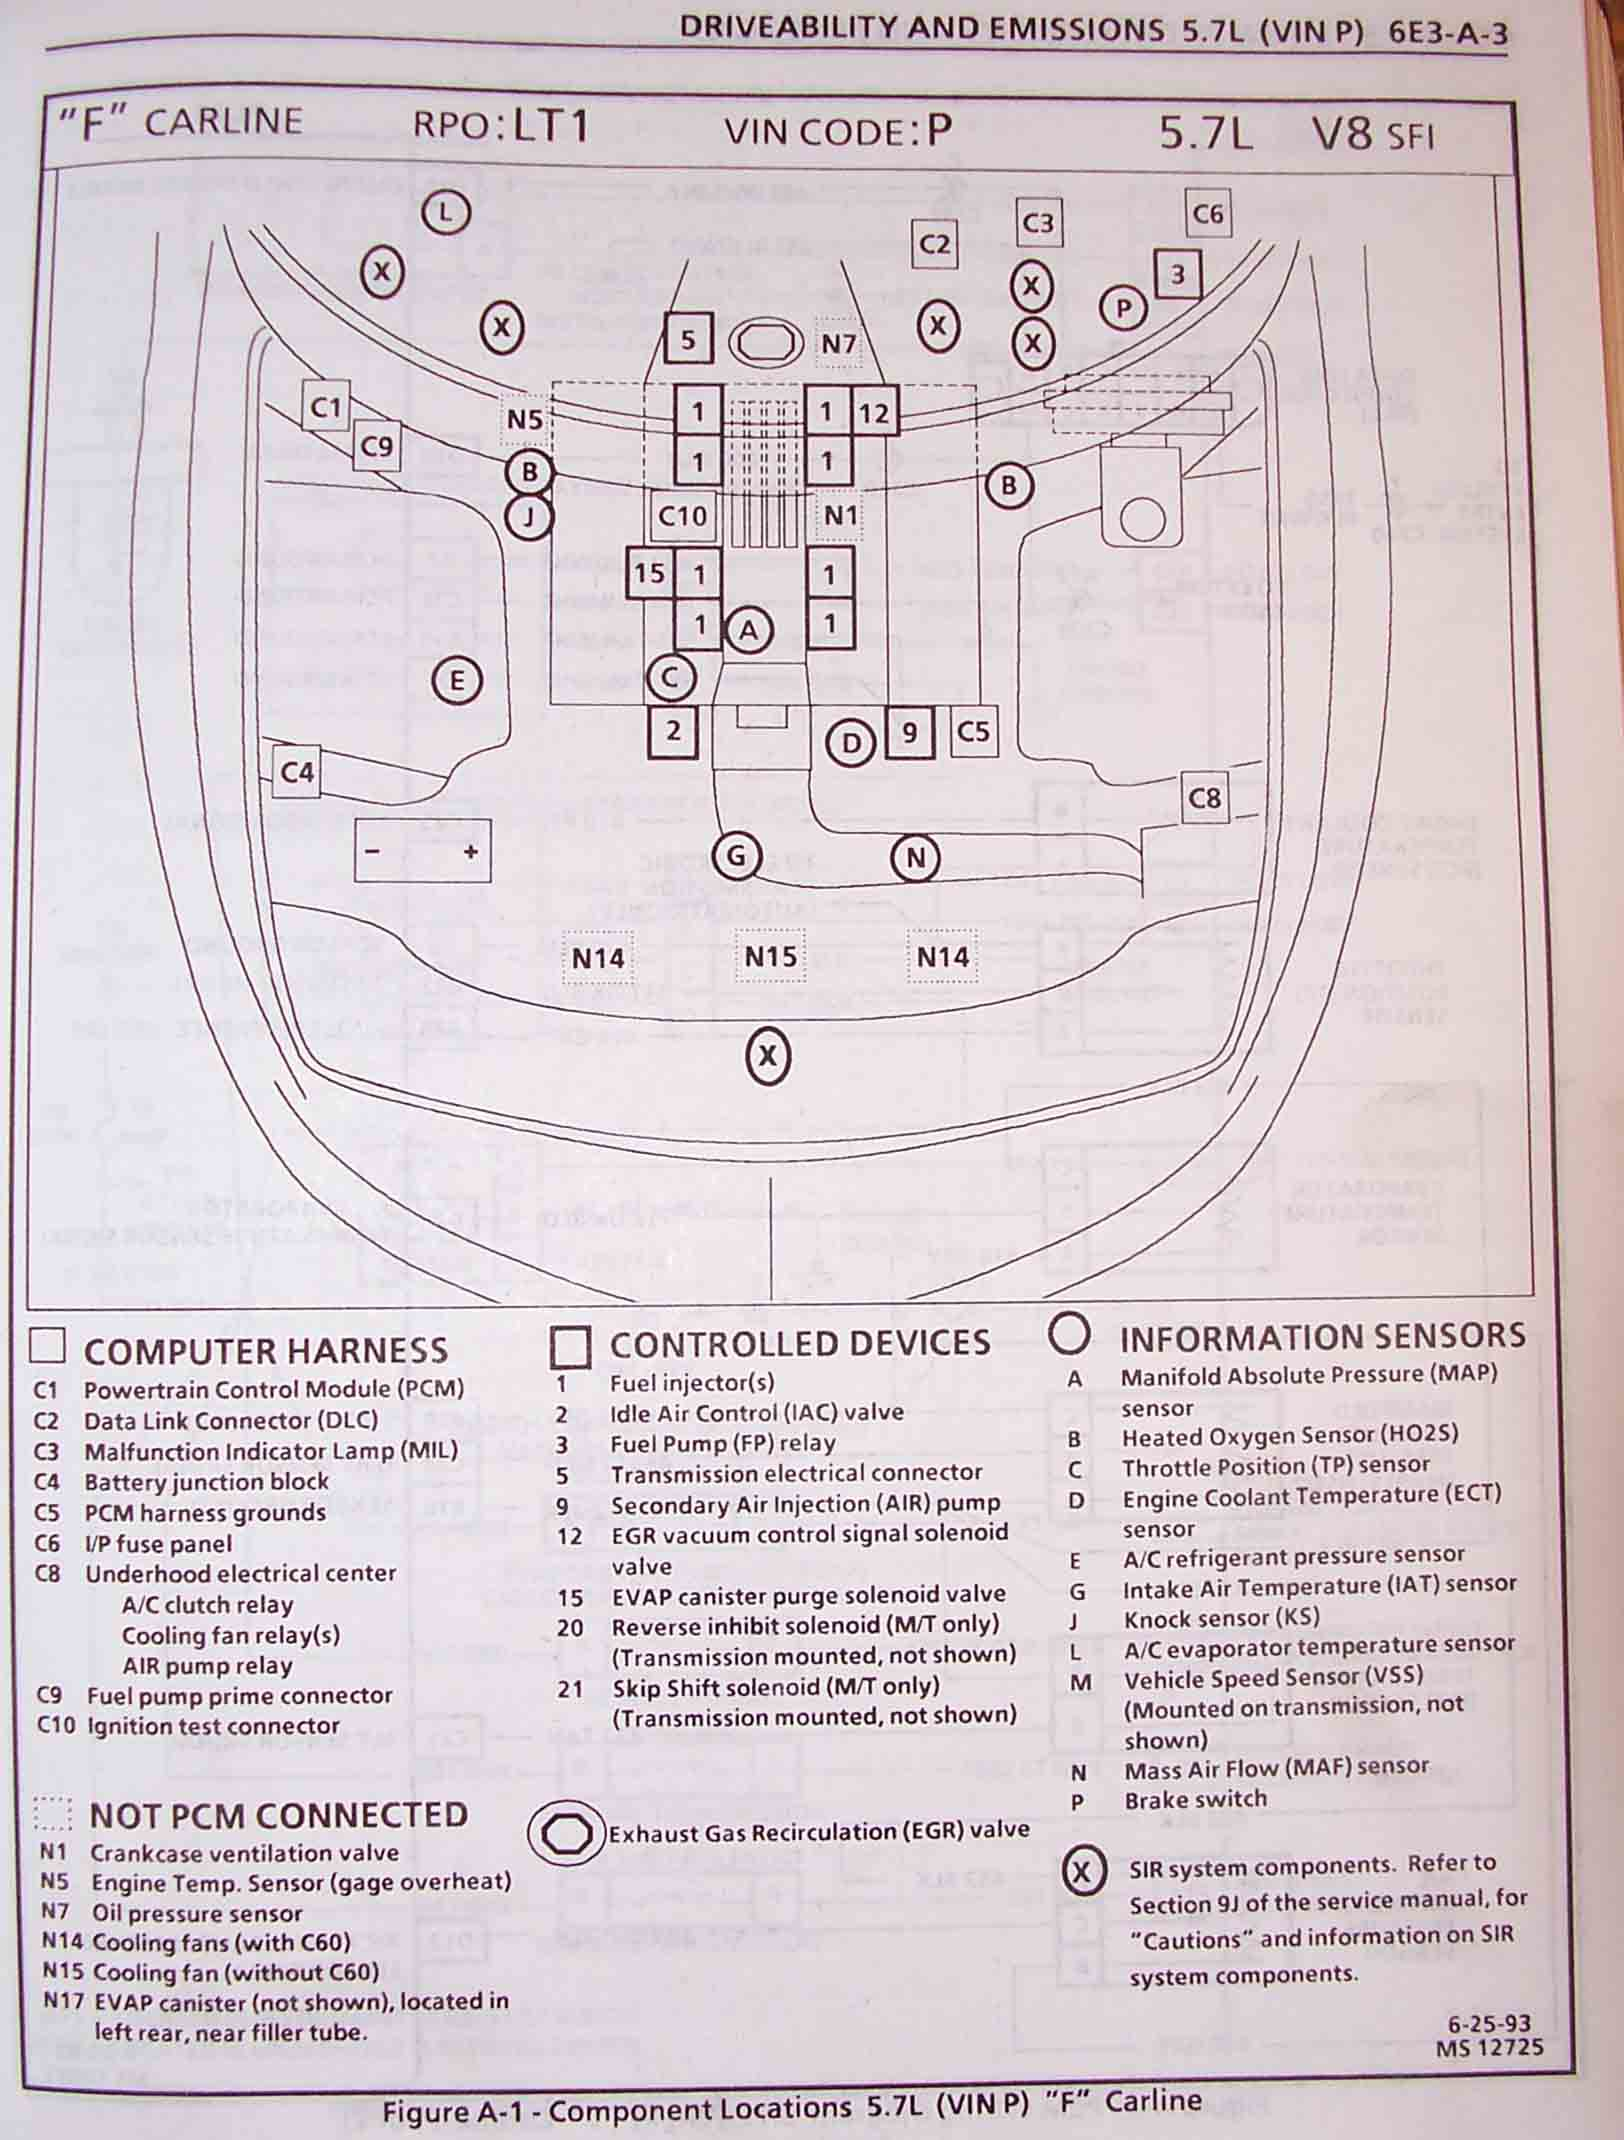 1995 F Body Wire Harness Schematics 4 7l Engine Diagram Valve These Are Specifically For 1994 Camaro Firebird 57l Lt1 However Will Be Very Similar To